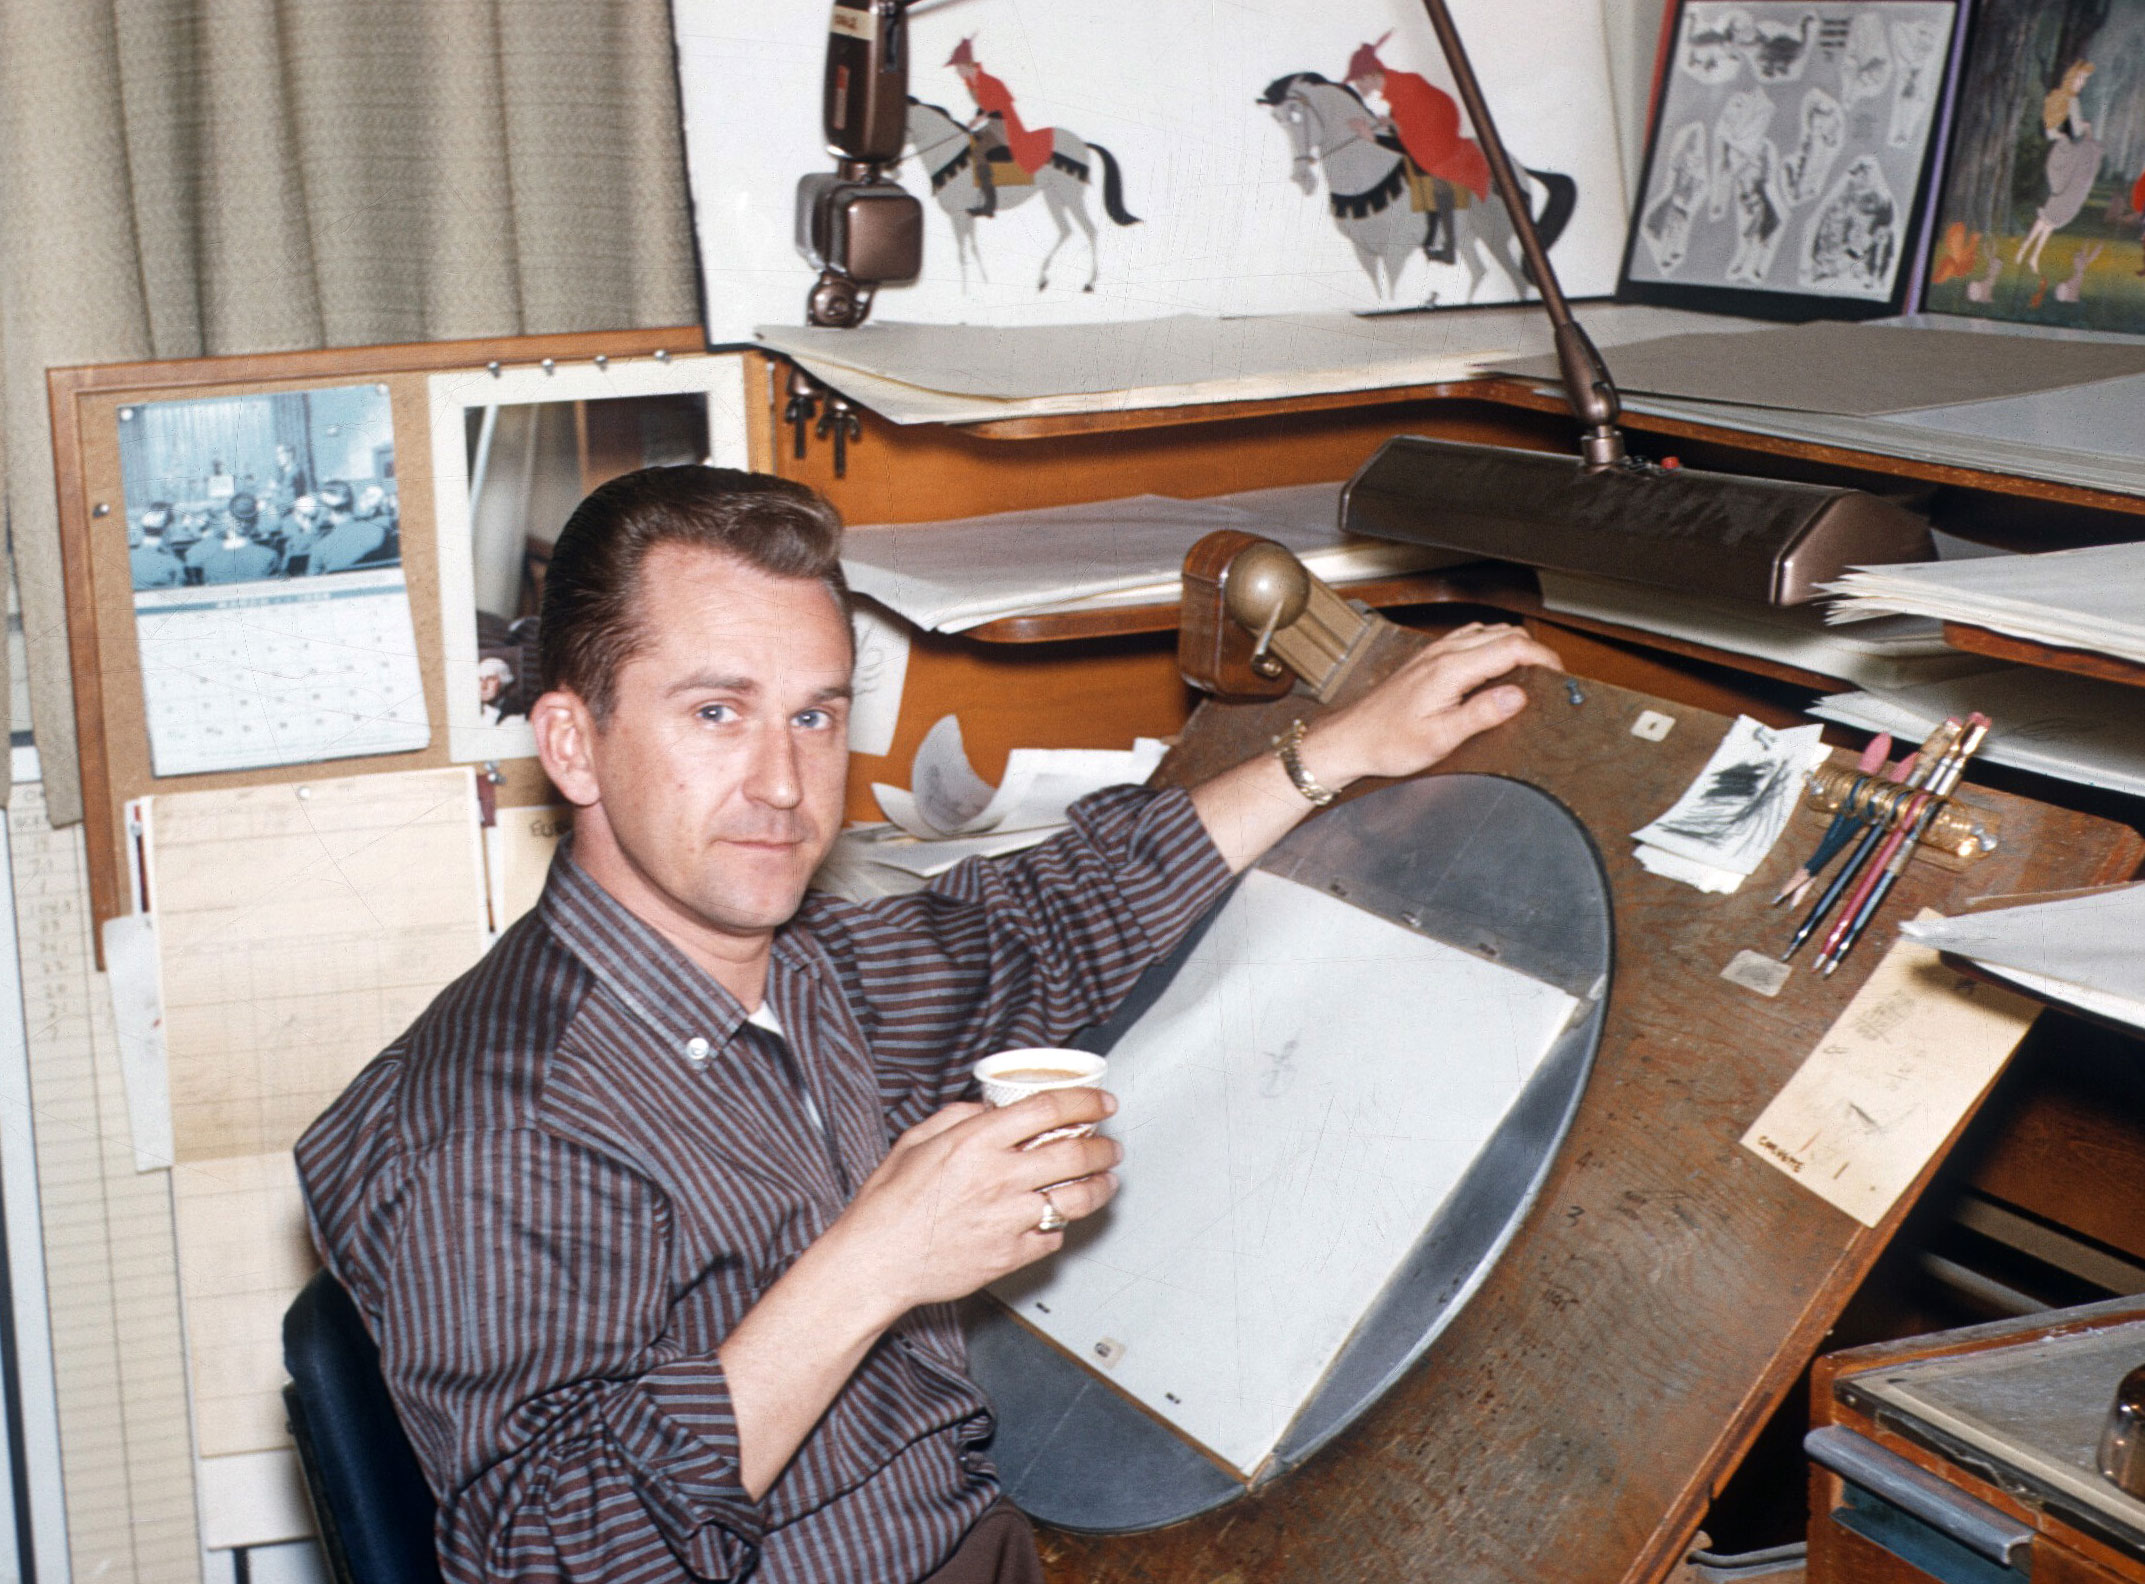 It's 1957 and we're hard at work on Walt Disney's Sleeping Beauty. Bob Ogle joined us after a stint in Disney's story department. Thankfully, there were more writing opportunities ahead.